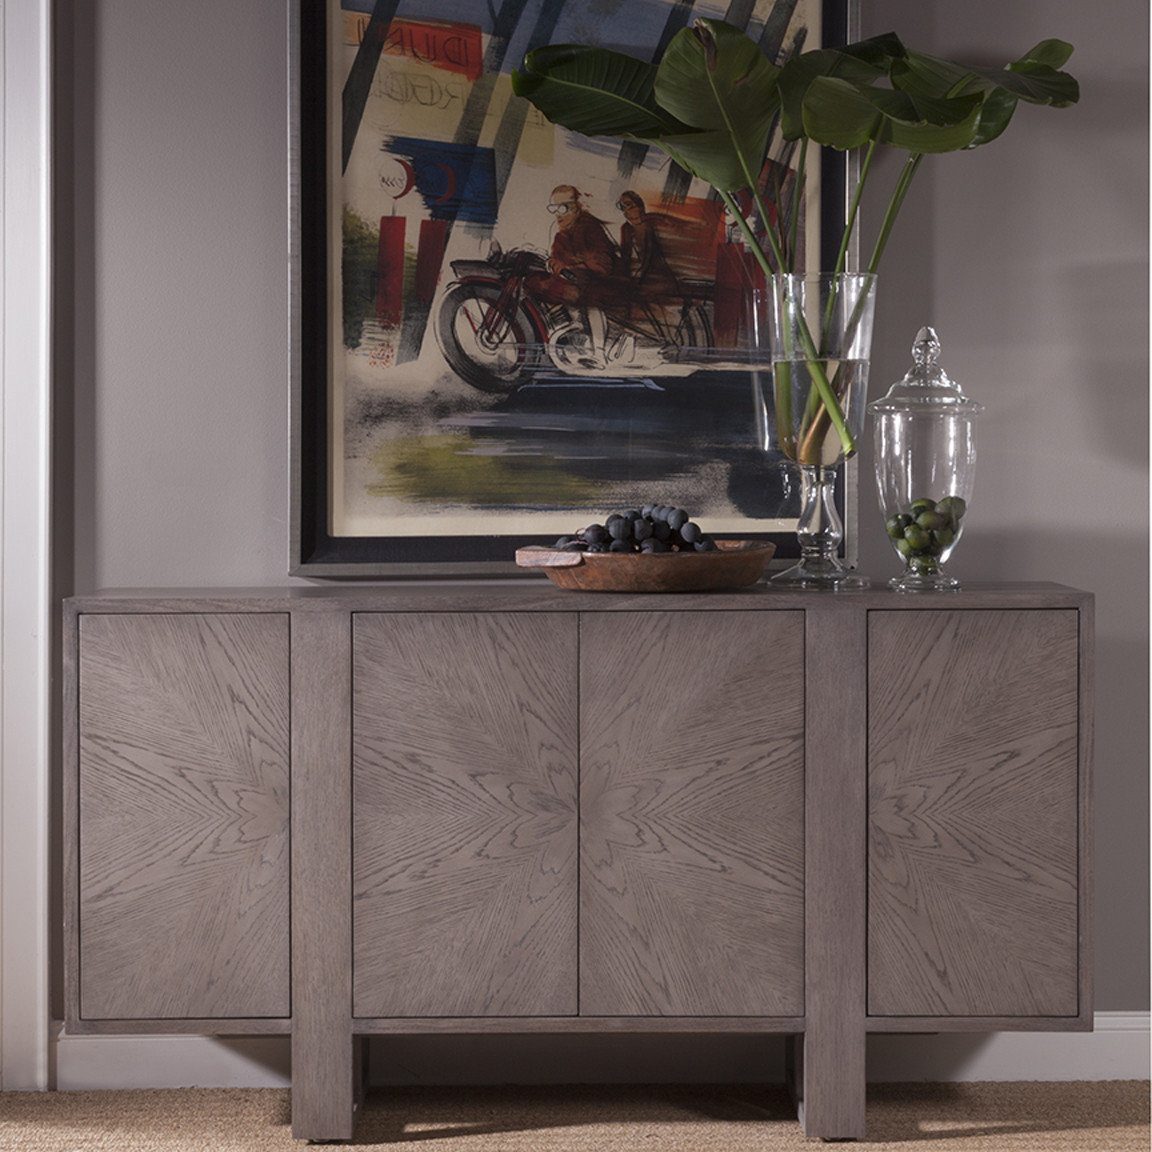 2019 Signature Designs Credenza Within Barr Credenzas (View 2 of 20)